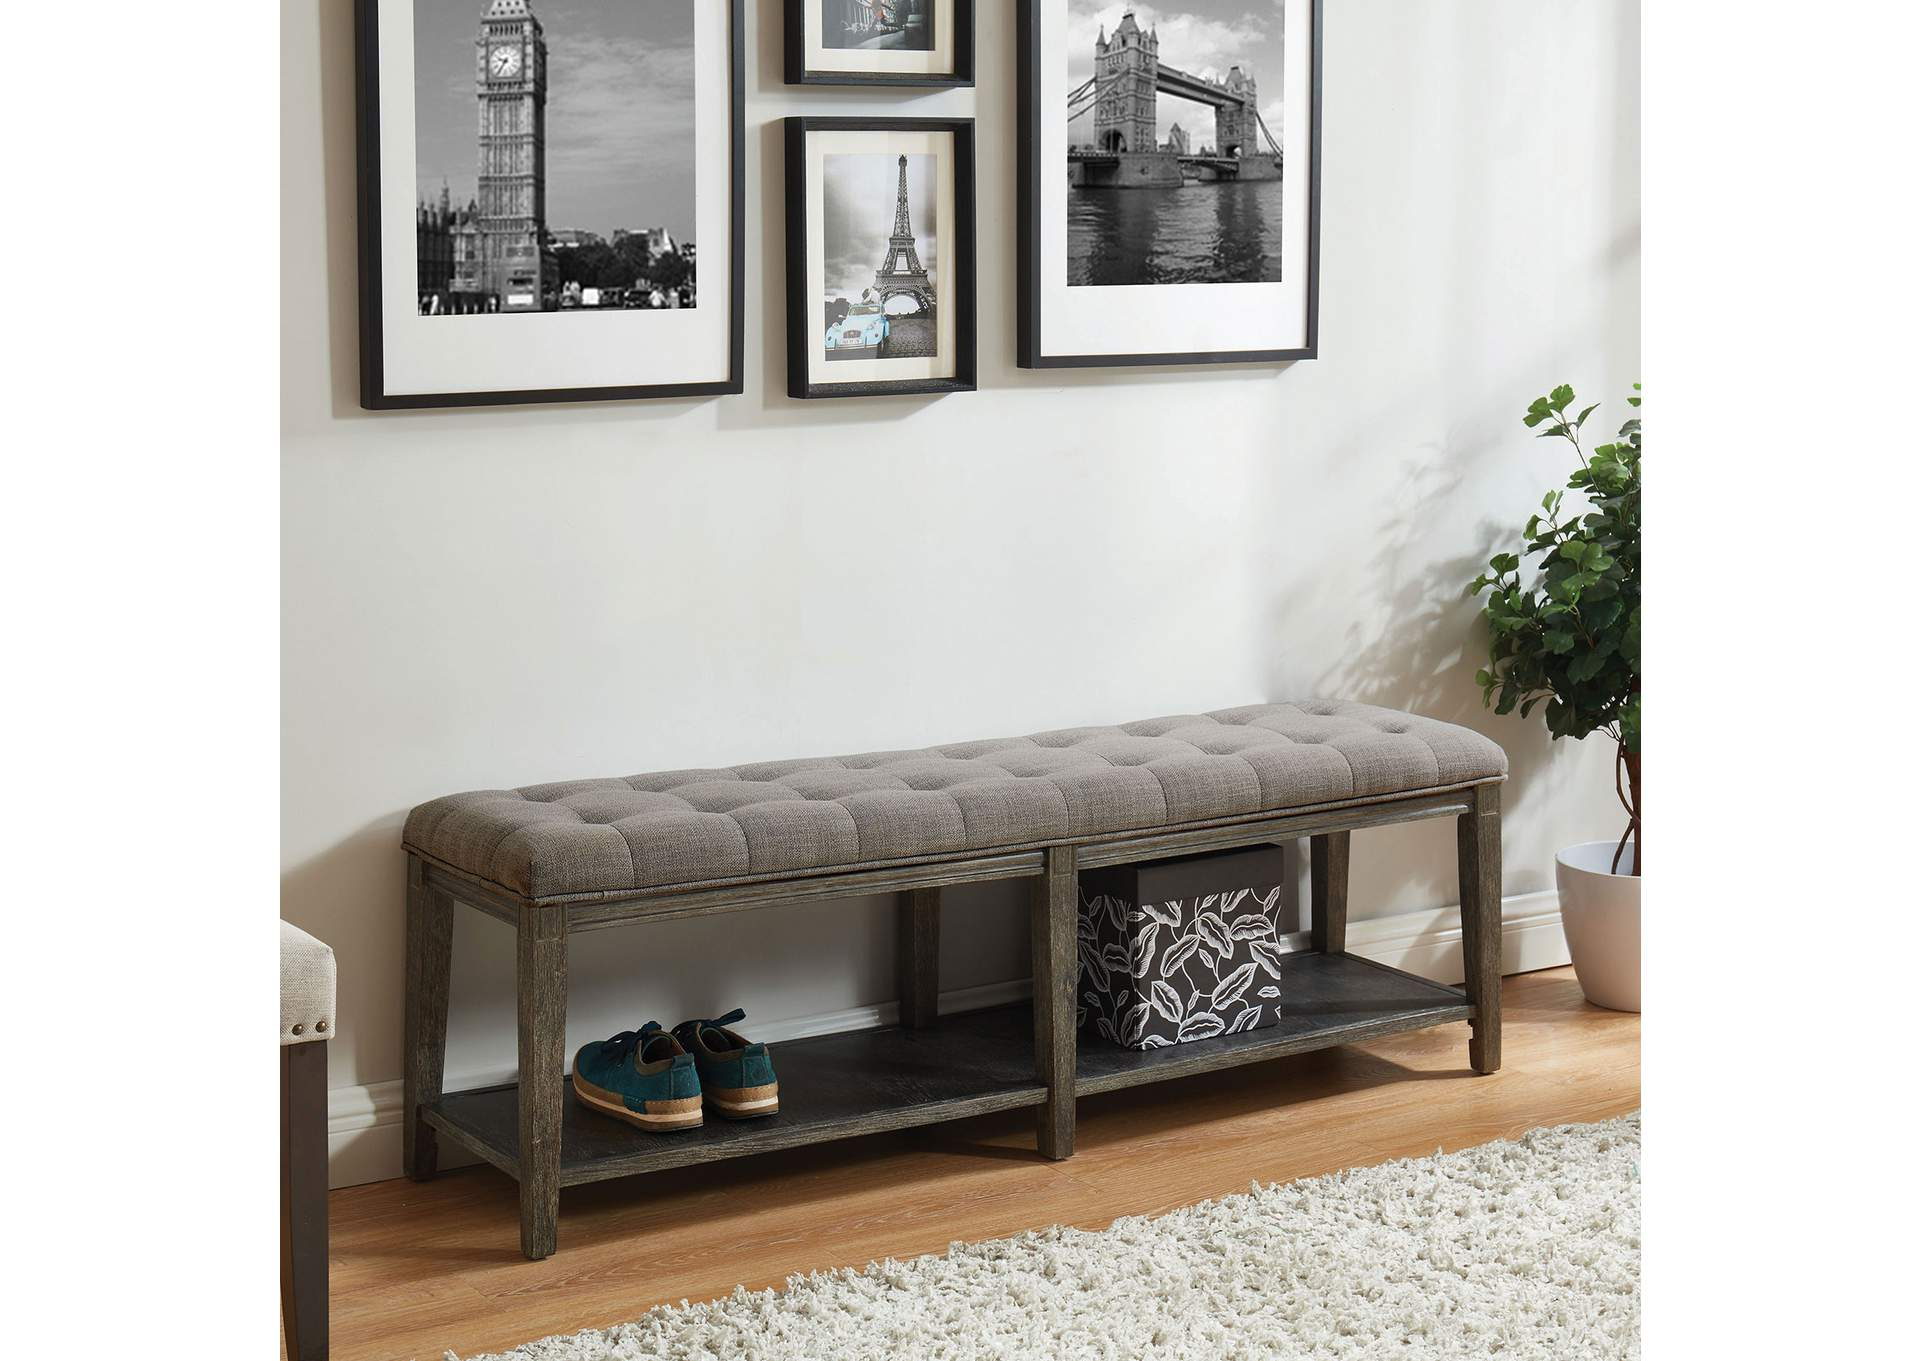 Tayah Gray Upholstered Bench,Furniture of America